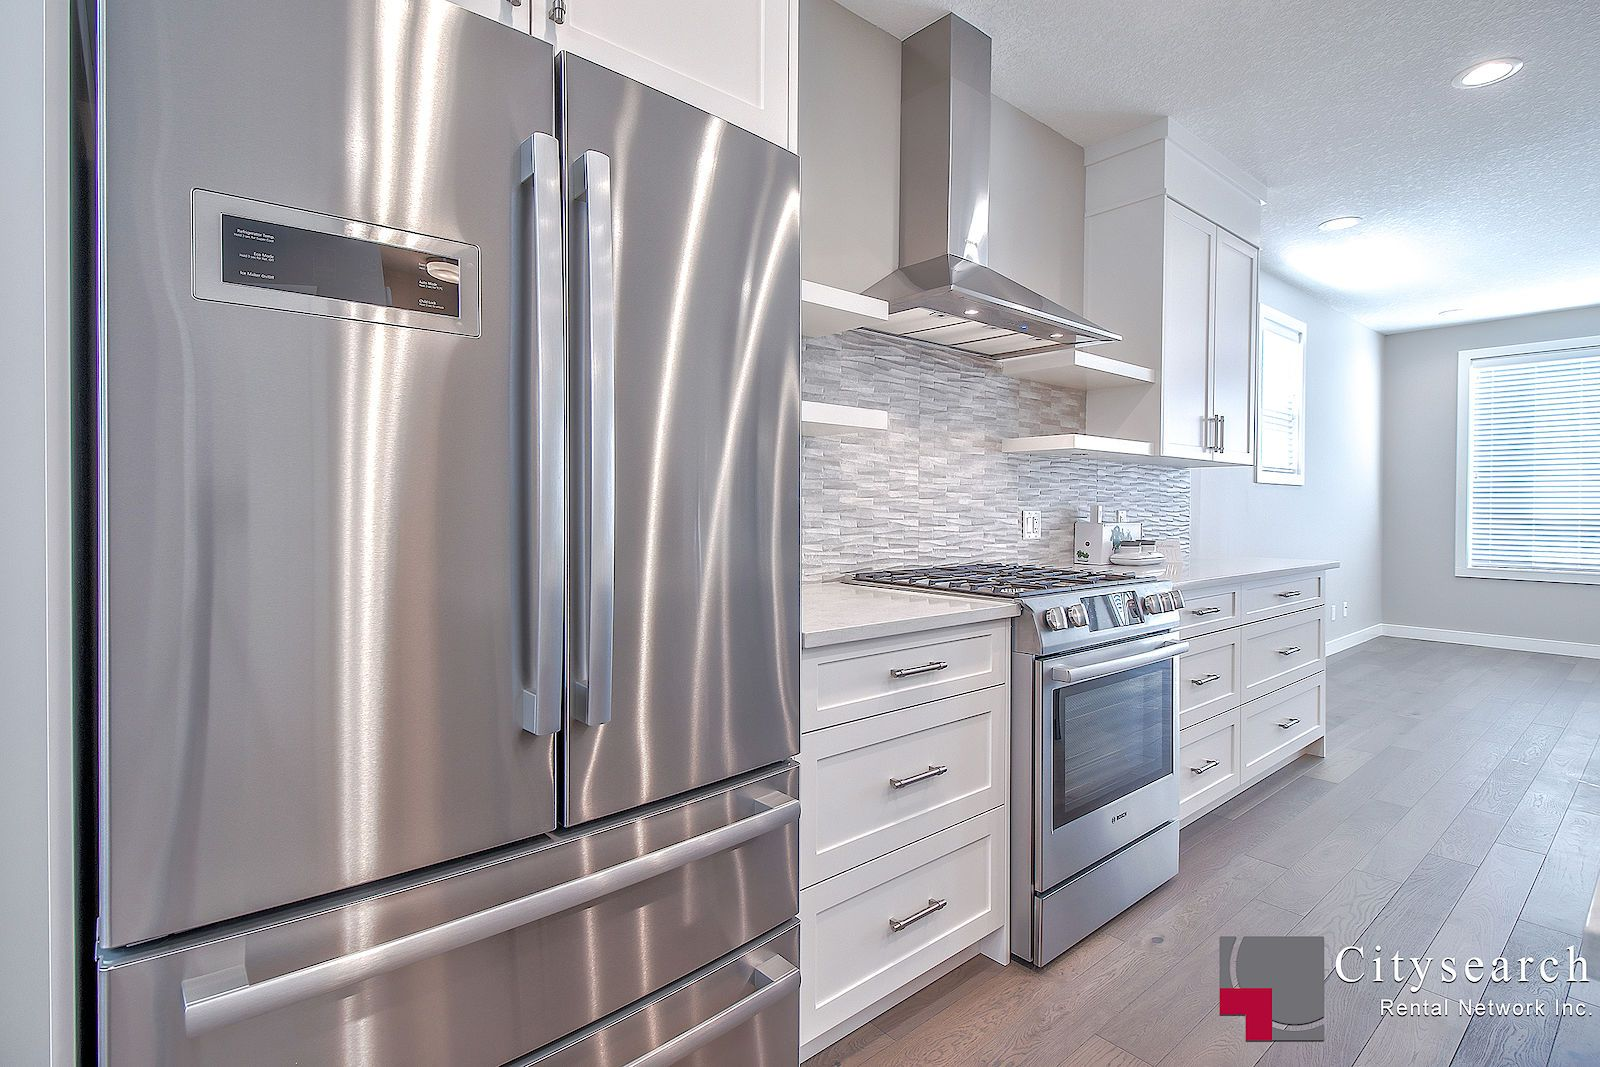 Calgary Townhouse For Rent University District University District Brand New Id 344363 Rentfaster Ca Townhouse For Rent Townhouse Rent